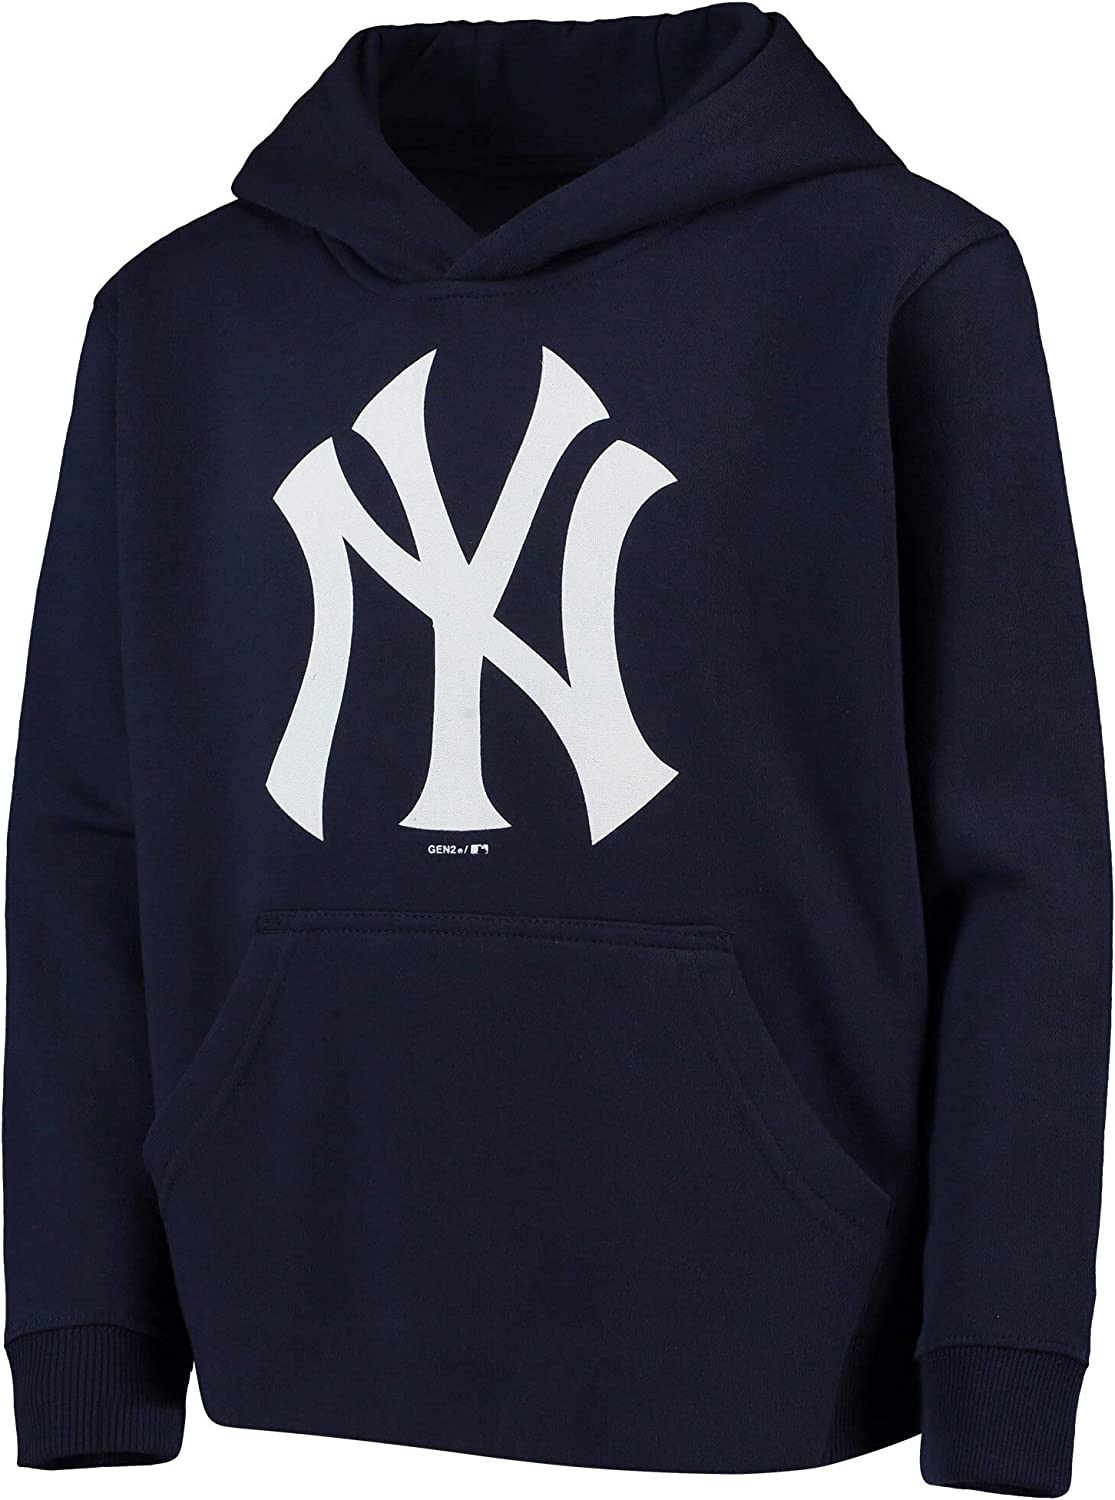 Outerstuff MLB Youth 8-20 Team Color Primary Logo Fleece Pullover Sweatshirt Hoodie